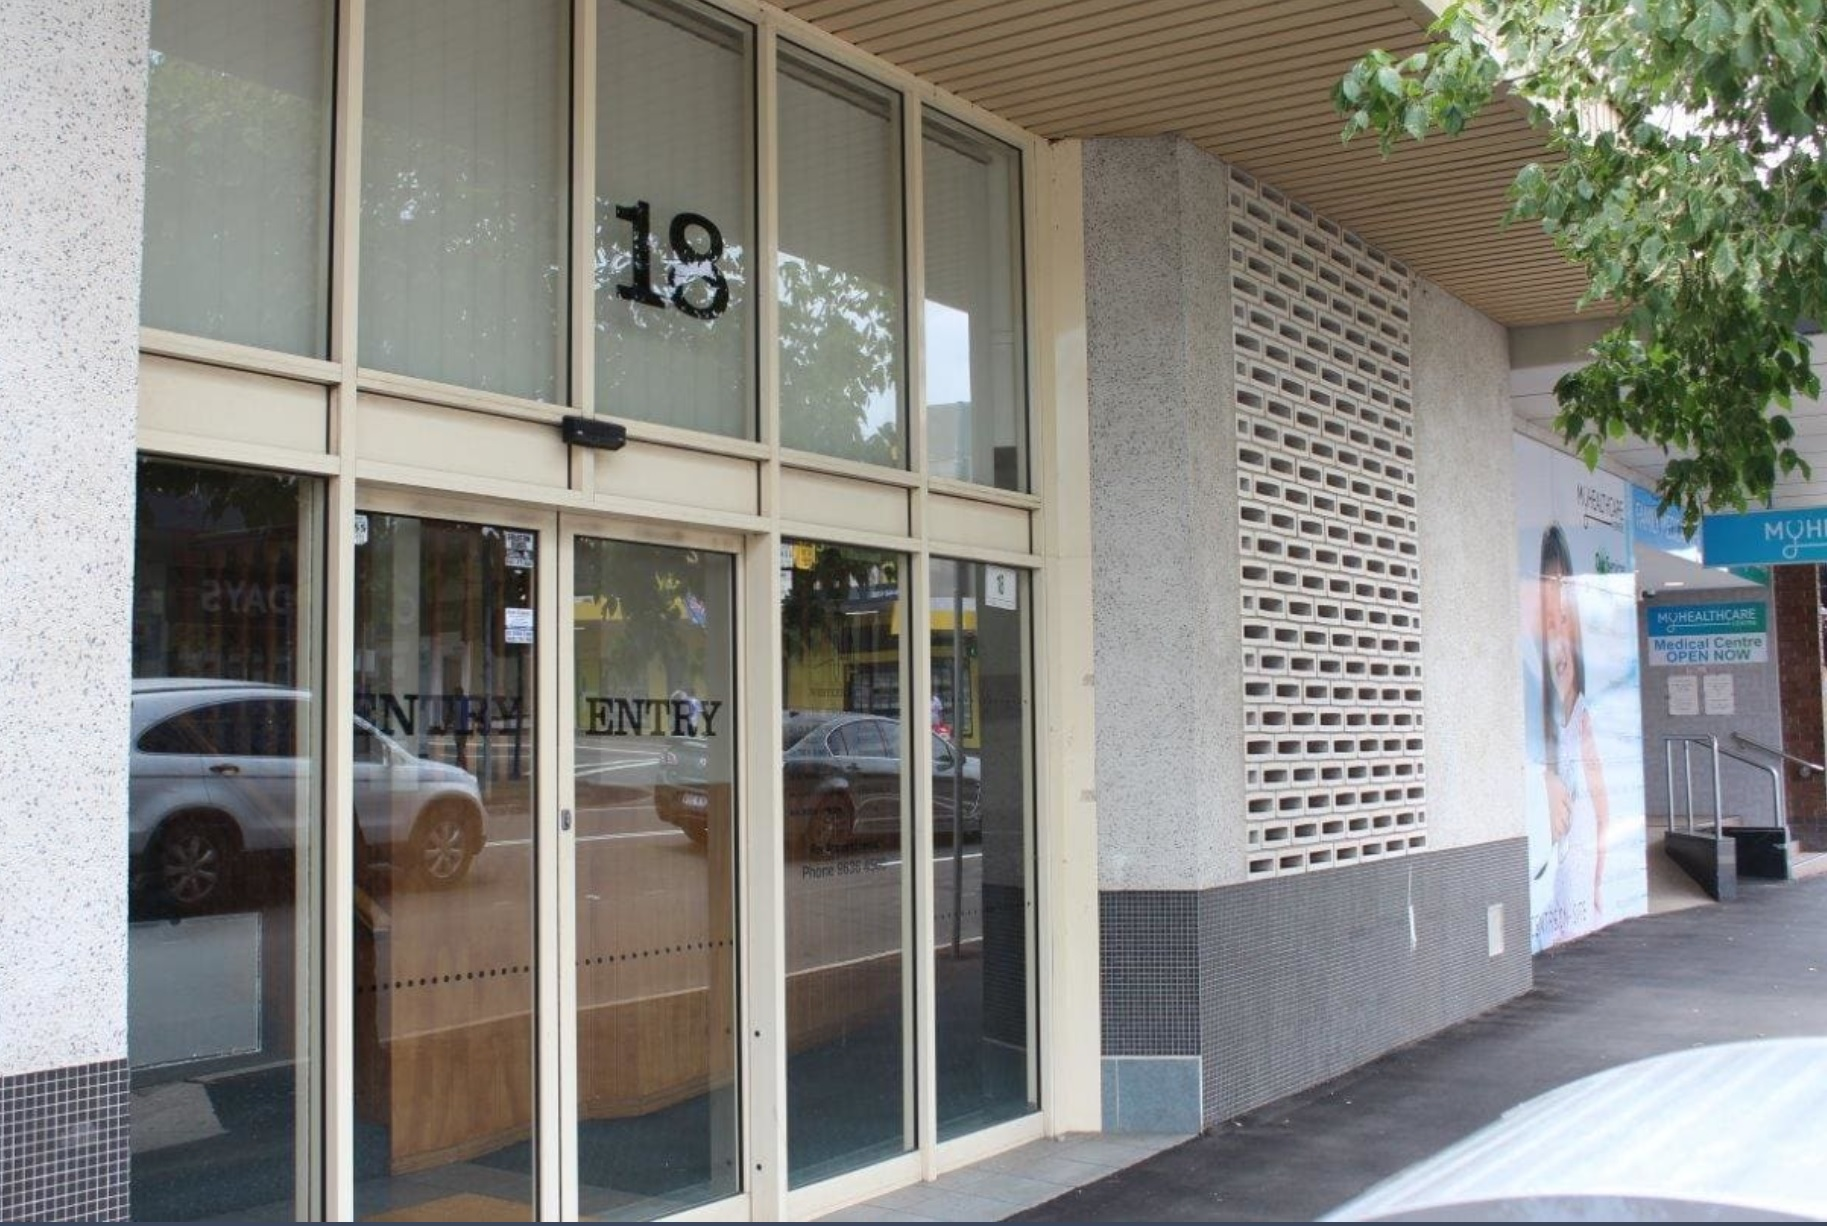 Leased18 Station St Wentworthville NSW 2145